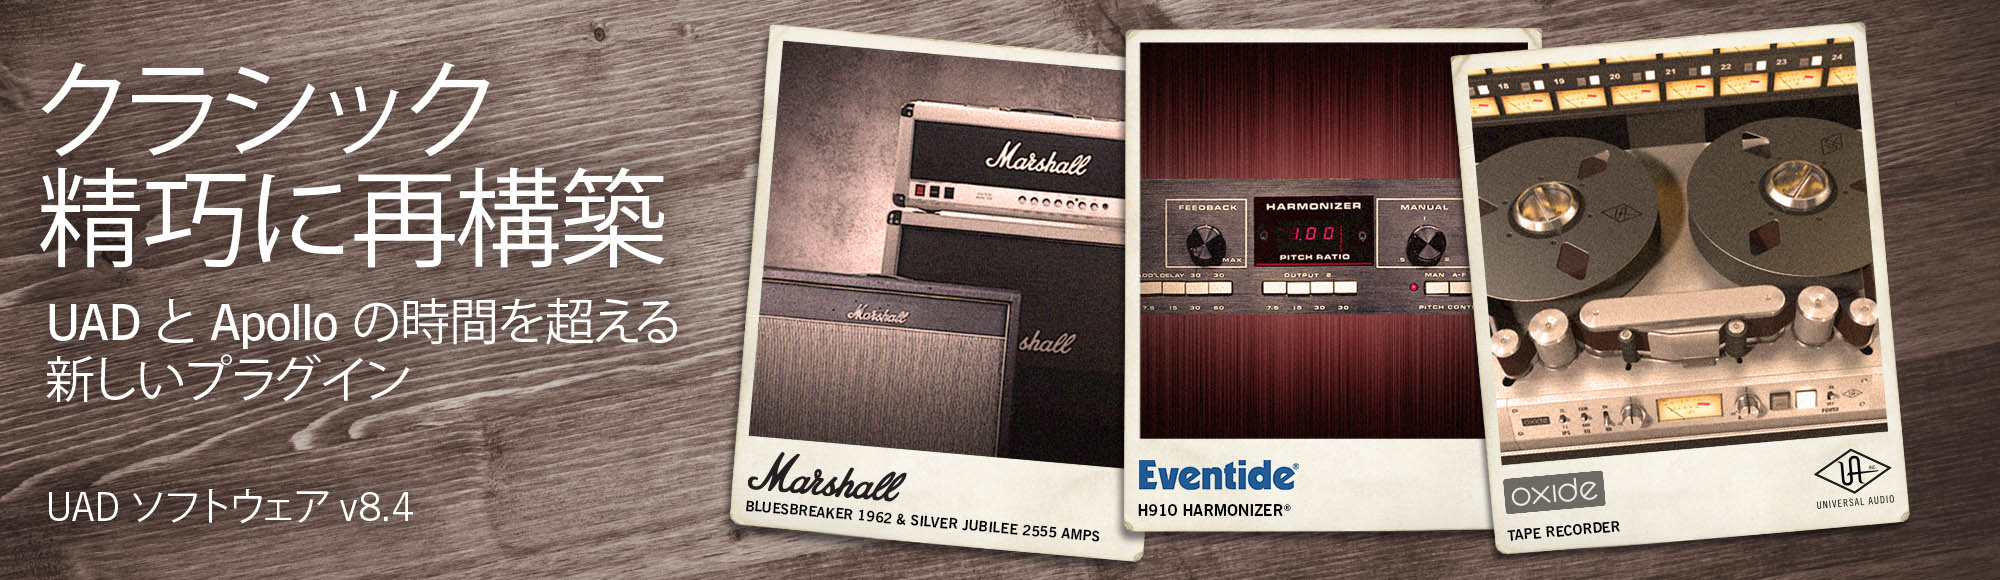 UAD Software Version 8.4, featuring the Marshall Legends Bundle, Eventide H910 Harmonizer, and Oxide Tape Recorder.